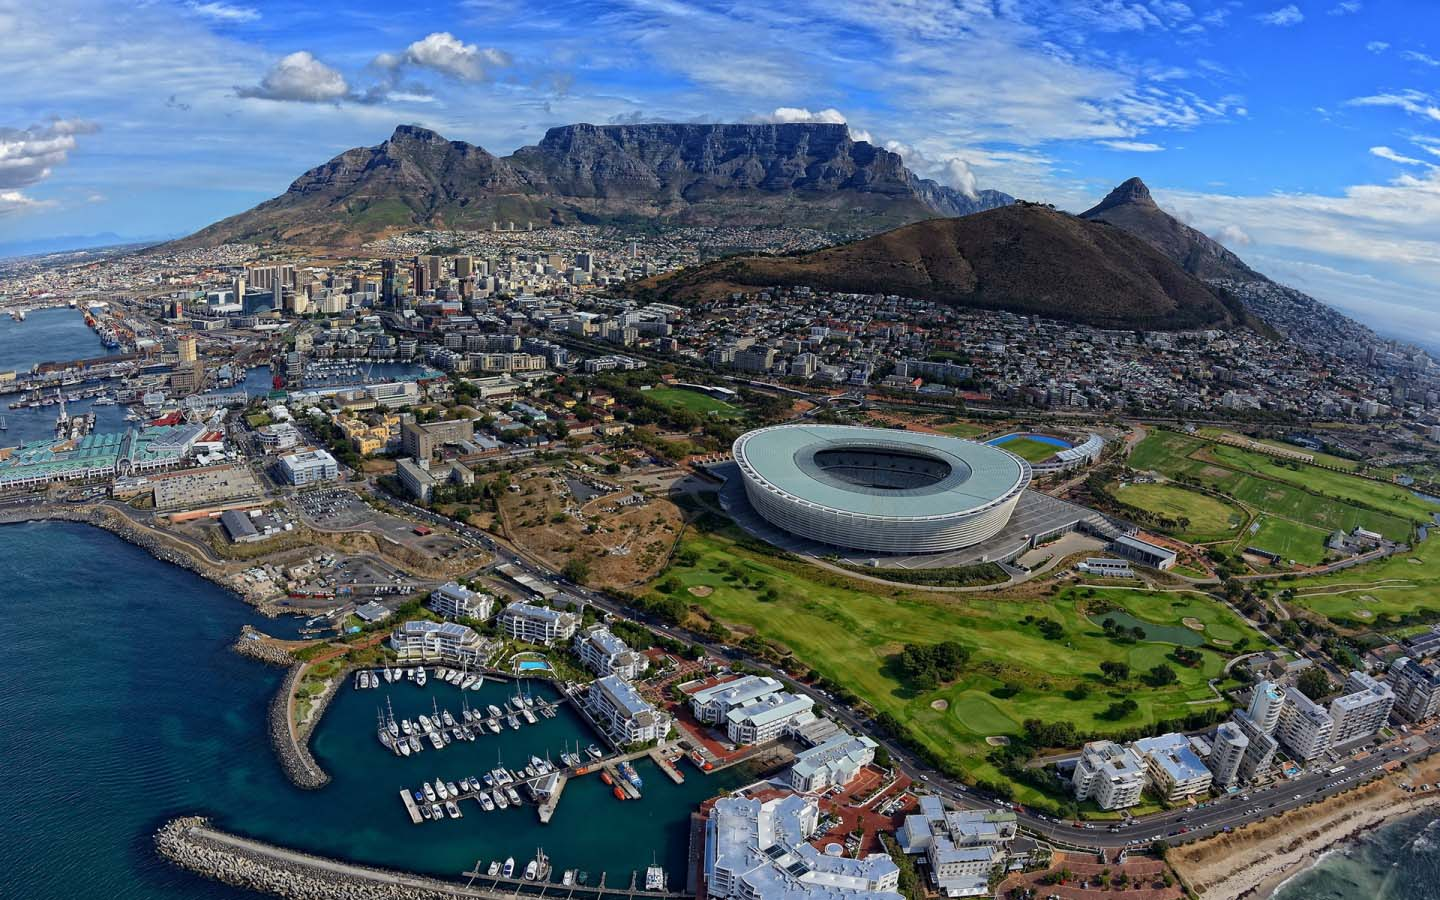 Day: 6,7,8,9,10:CAPE TOWN - One of the most beautiful cities in the world! Experience the highest sea cliffs & freshest air at the South-Western tip of Africa.